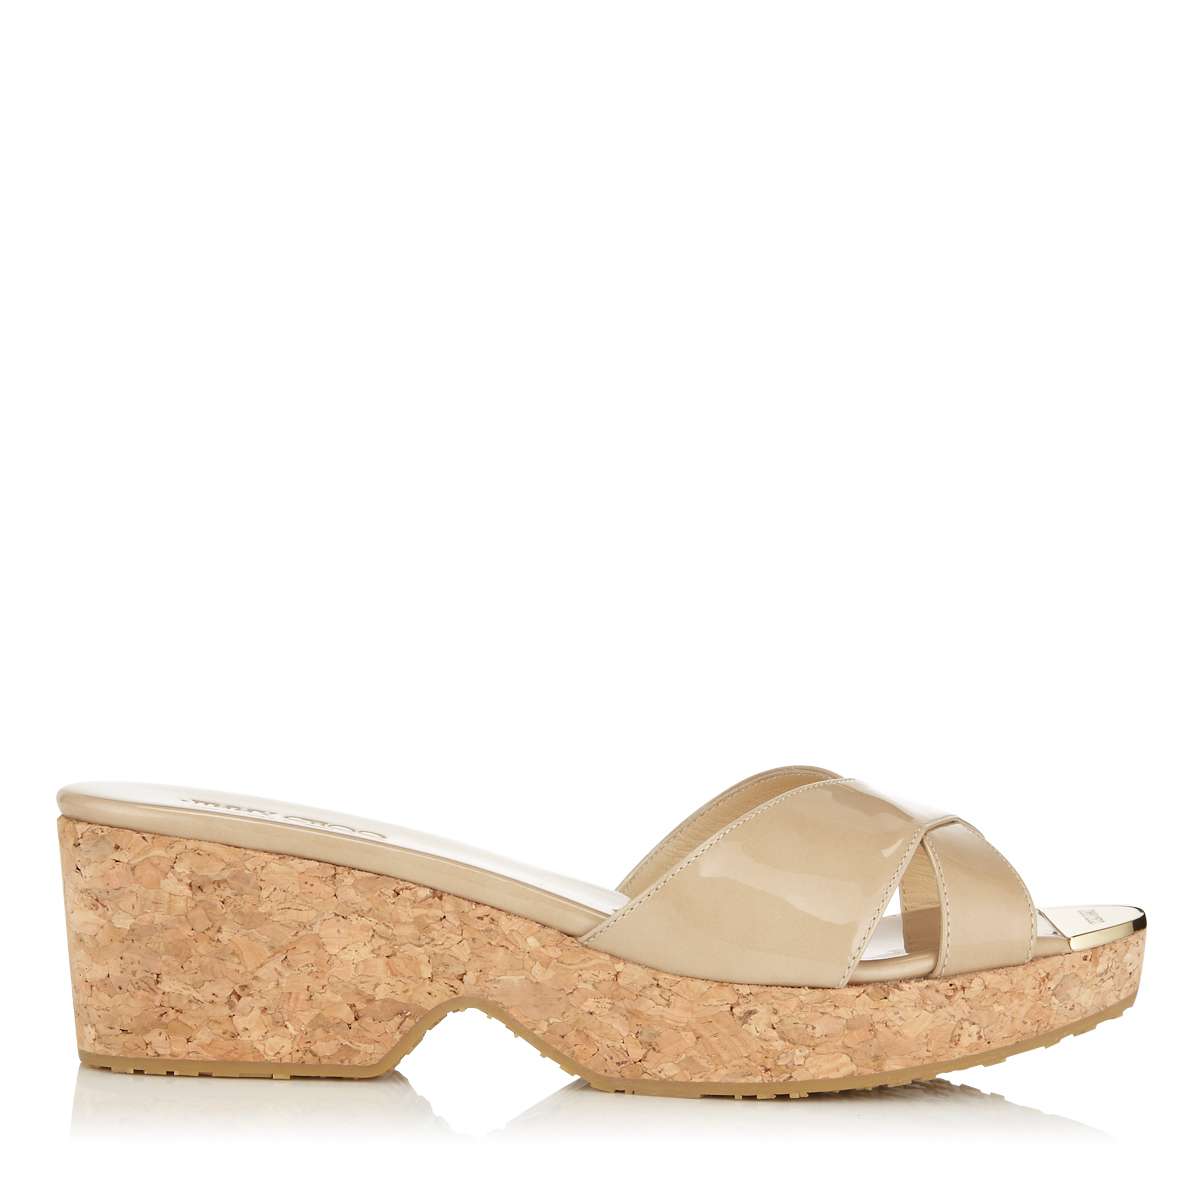 jimmy choo female panna nude patent leather wedge sandals